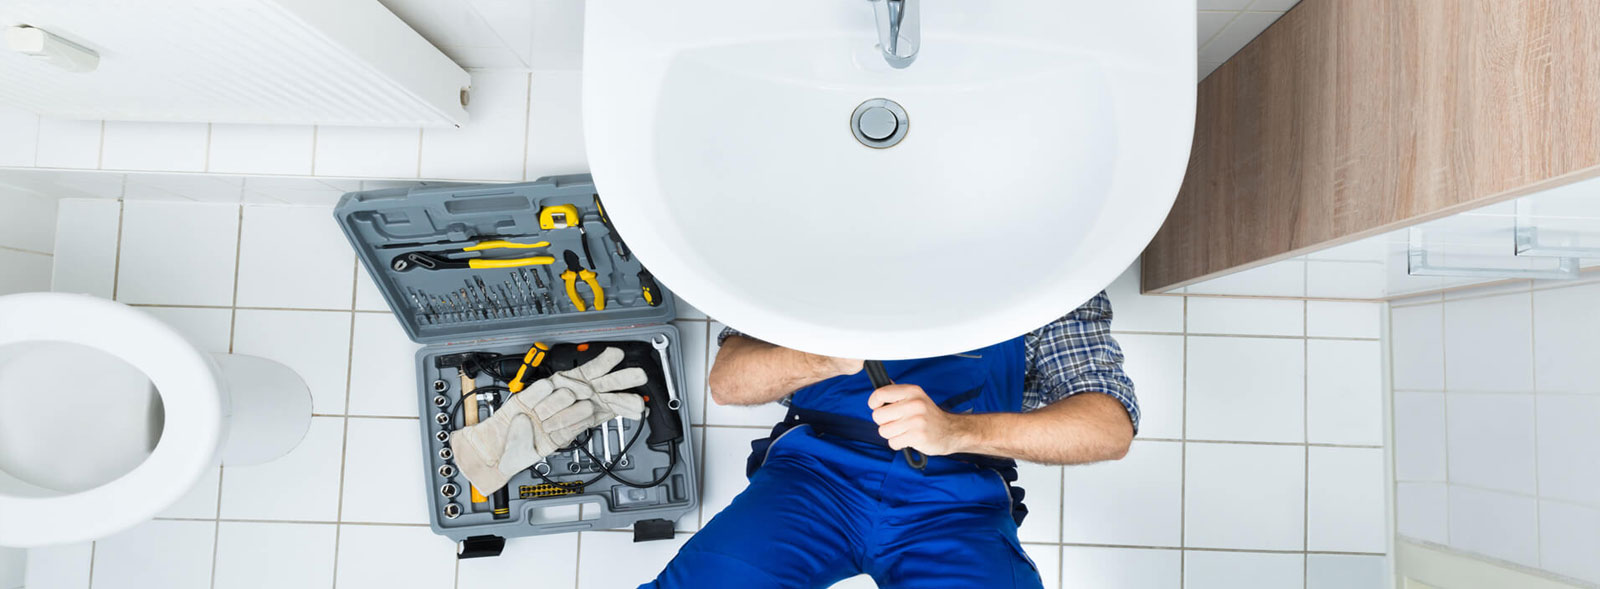 Plumbing-bath-kitchen-sink-taps-leaks